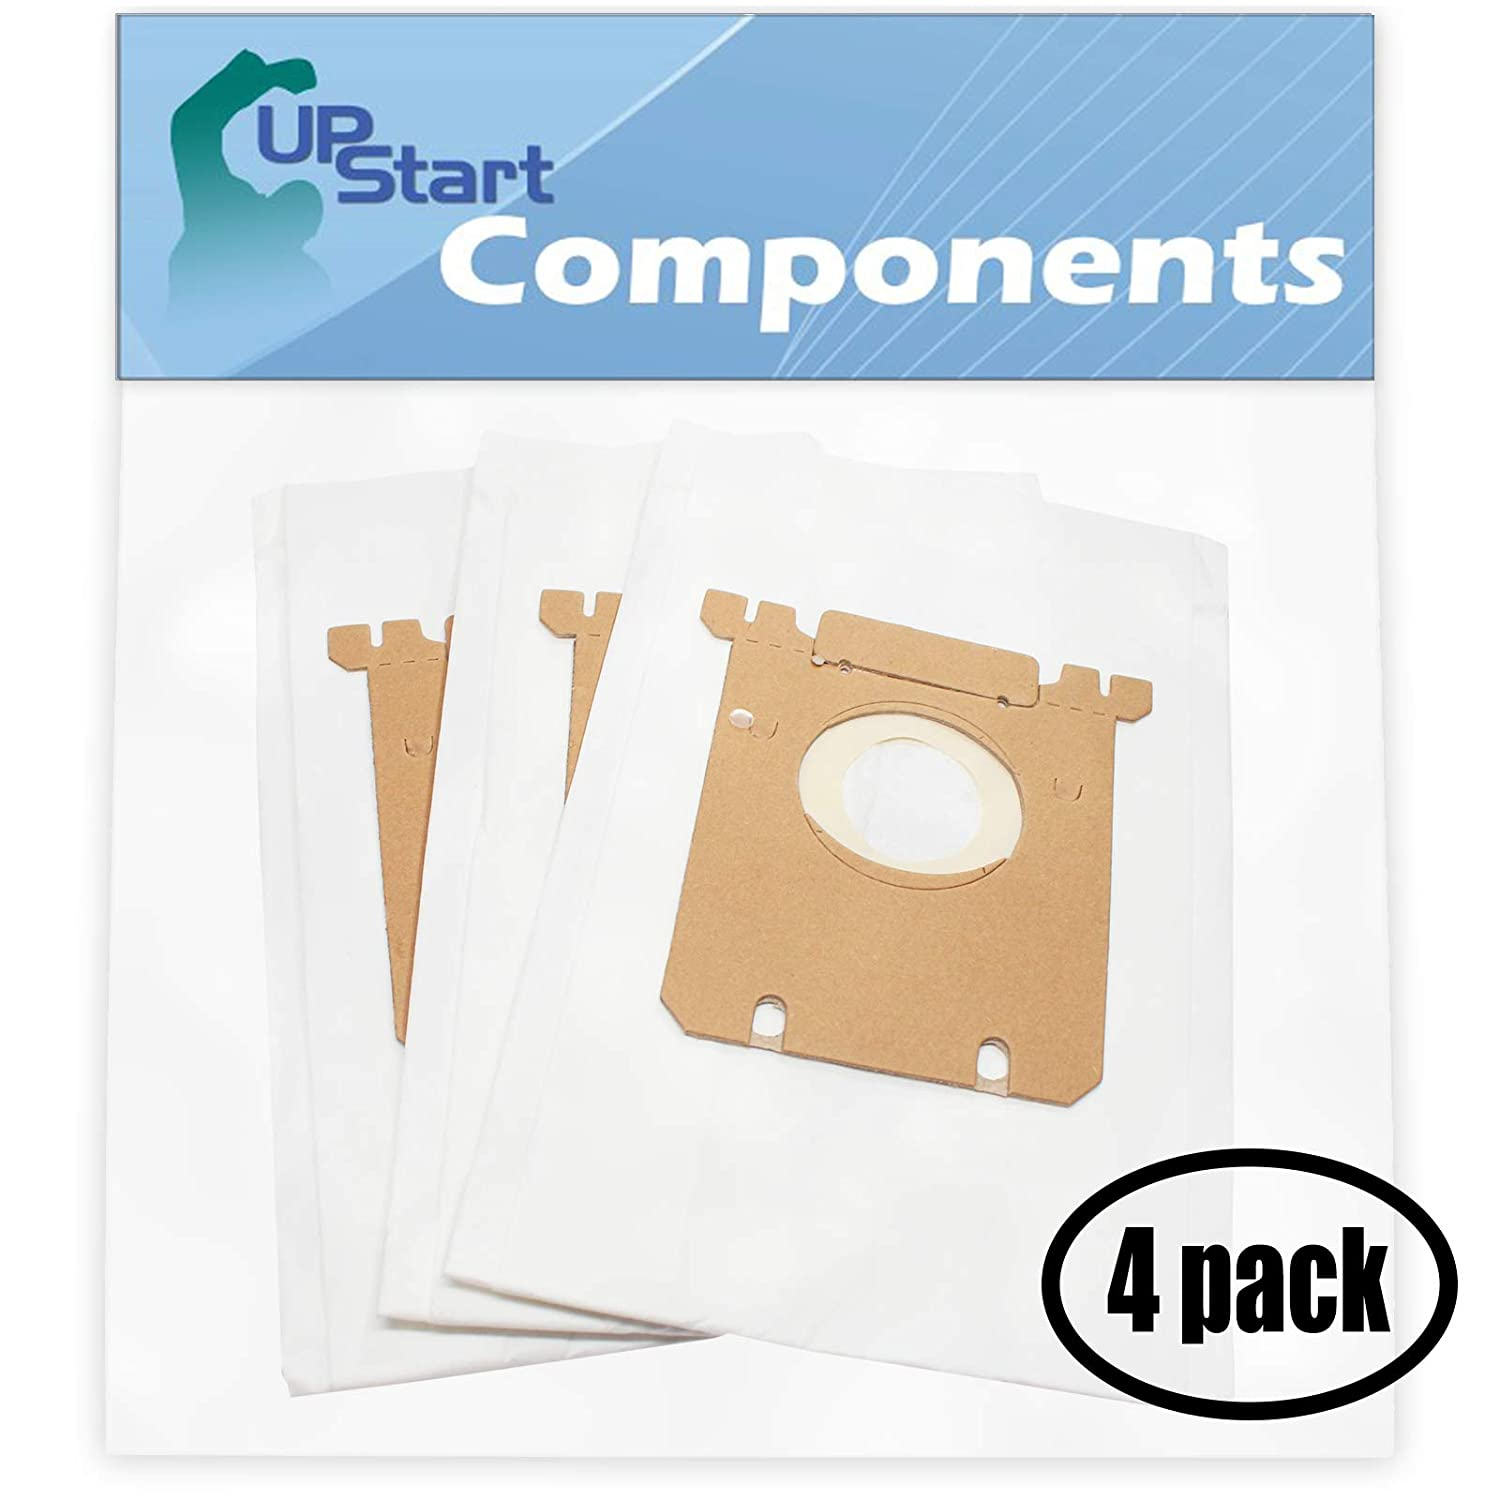 UpStart Battery 12 Replacement for Eureka 6975A Style S Vacuum Bags - Compatible with Eureka 61230F, OX Vacuum Bags (4-Pack - 3 Vacuum Bags per Pack)